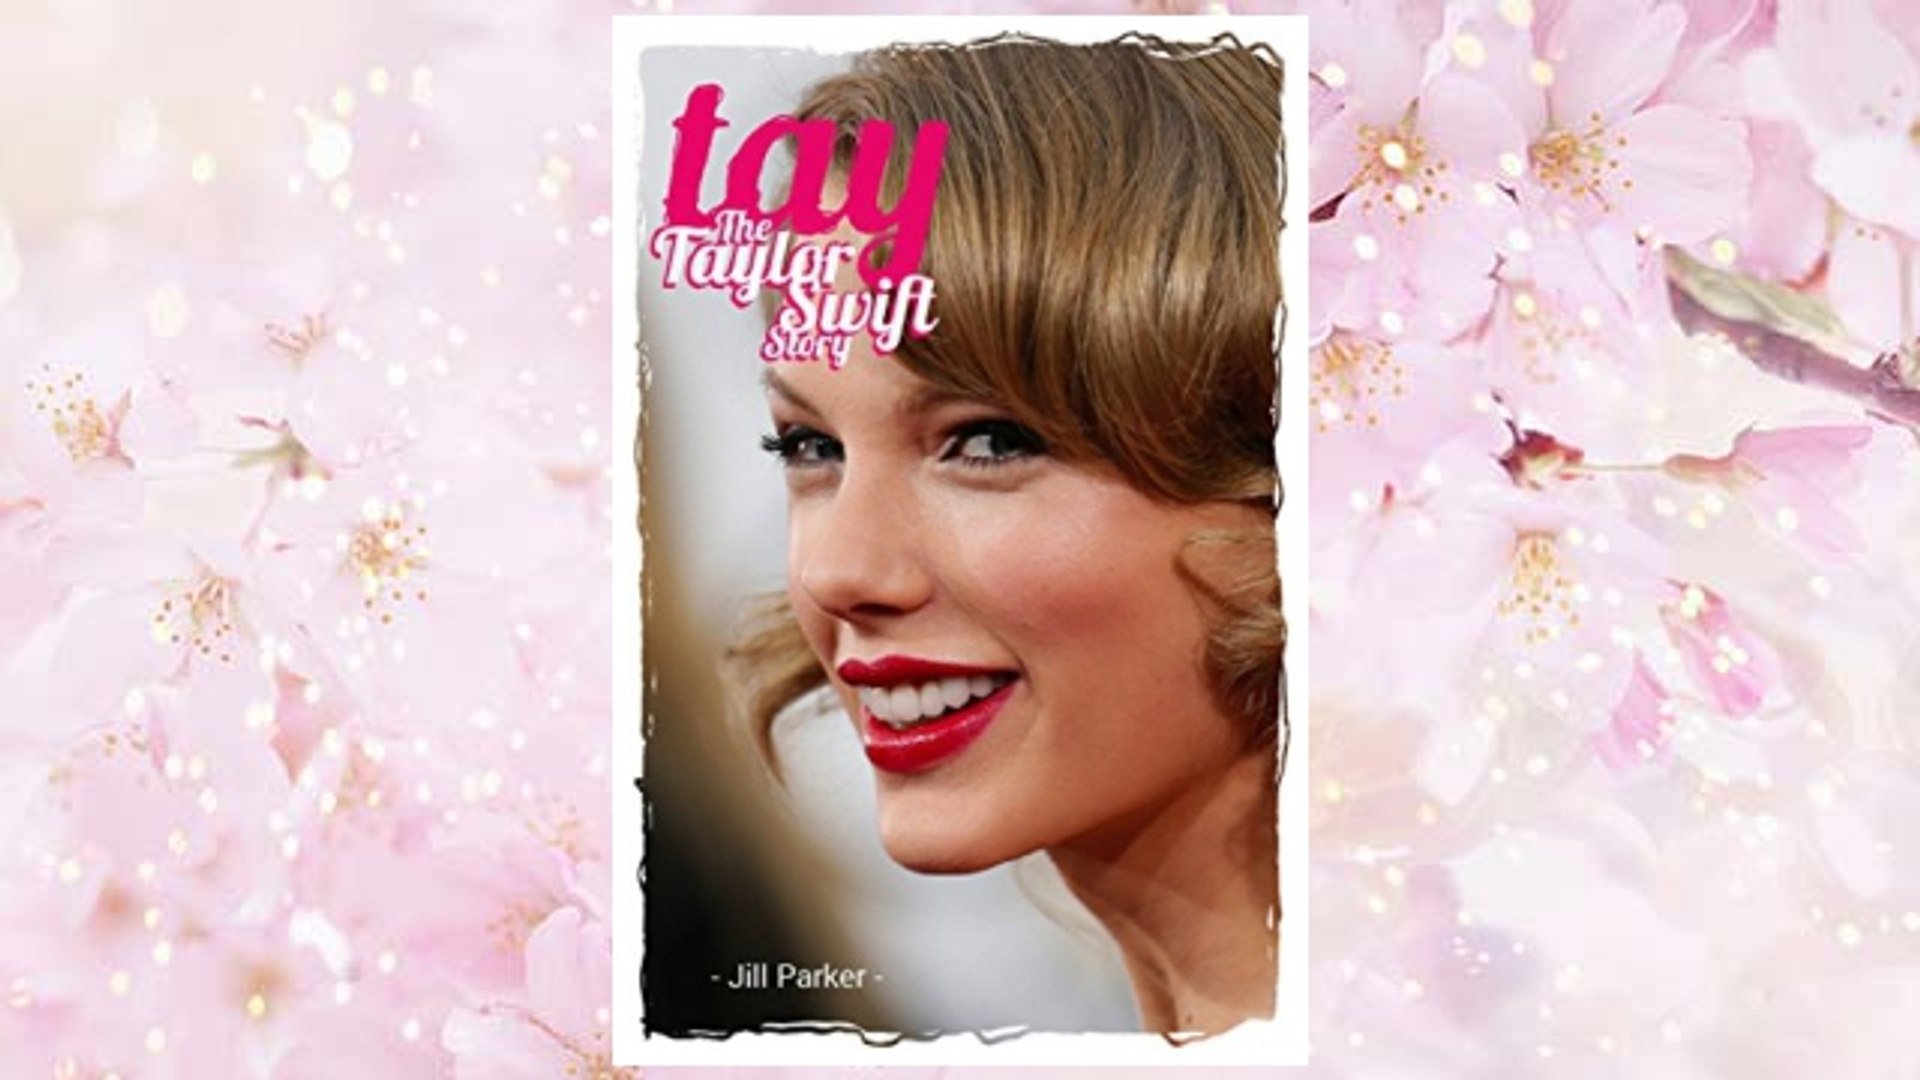 Download PDF Taylor Swift biography: TAY - The Taylor Swift Story FREE